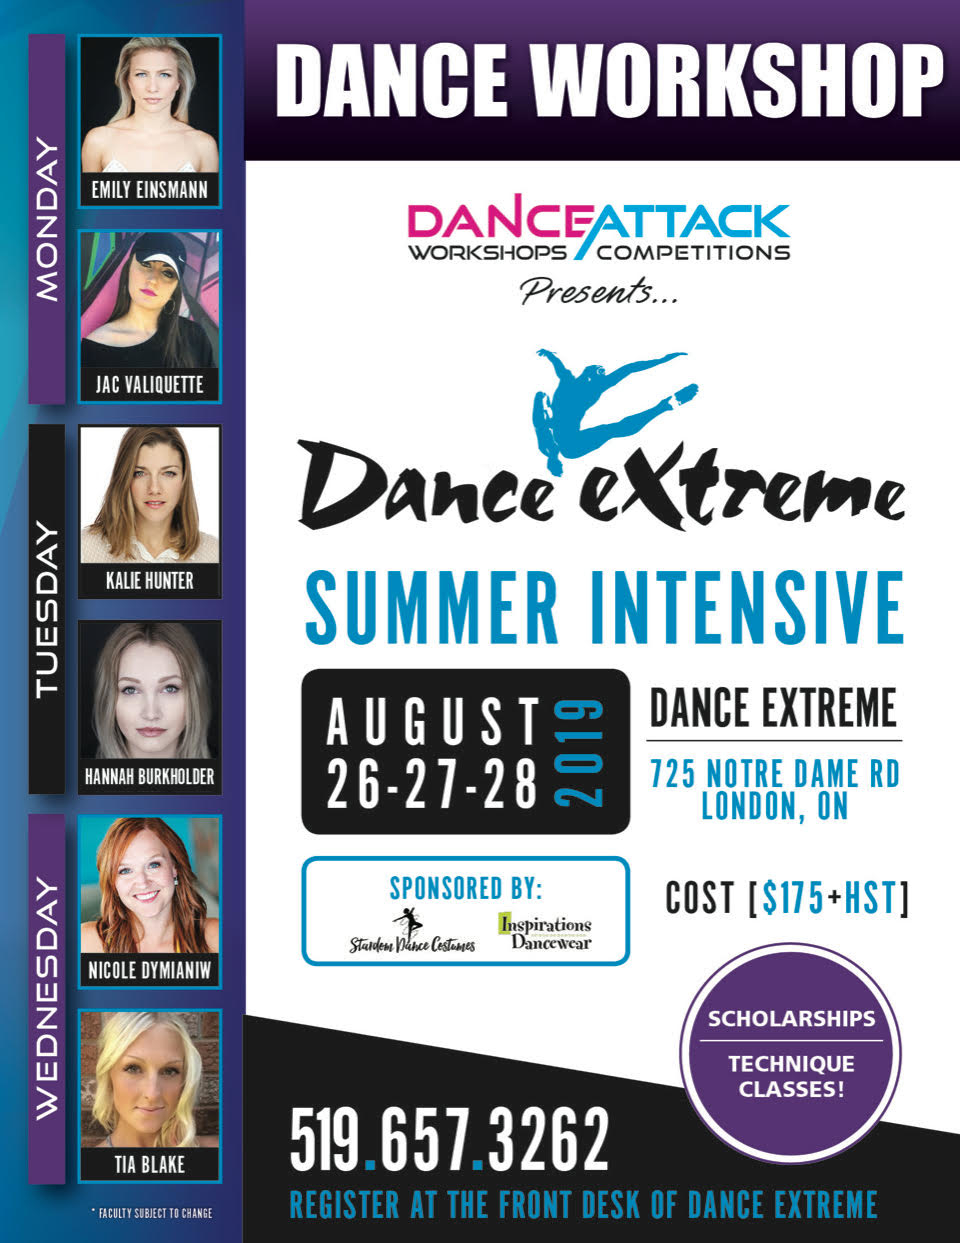 Dance Extreme Inc in London: Summer Intensive 3 Day Camp! Sign up today!